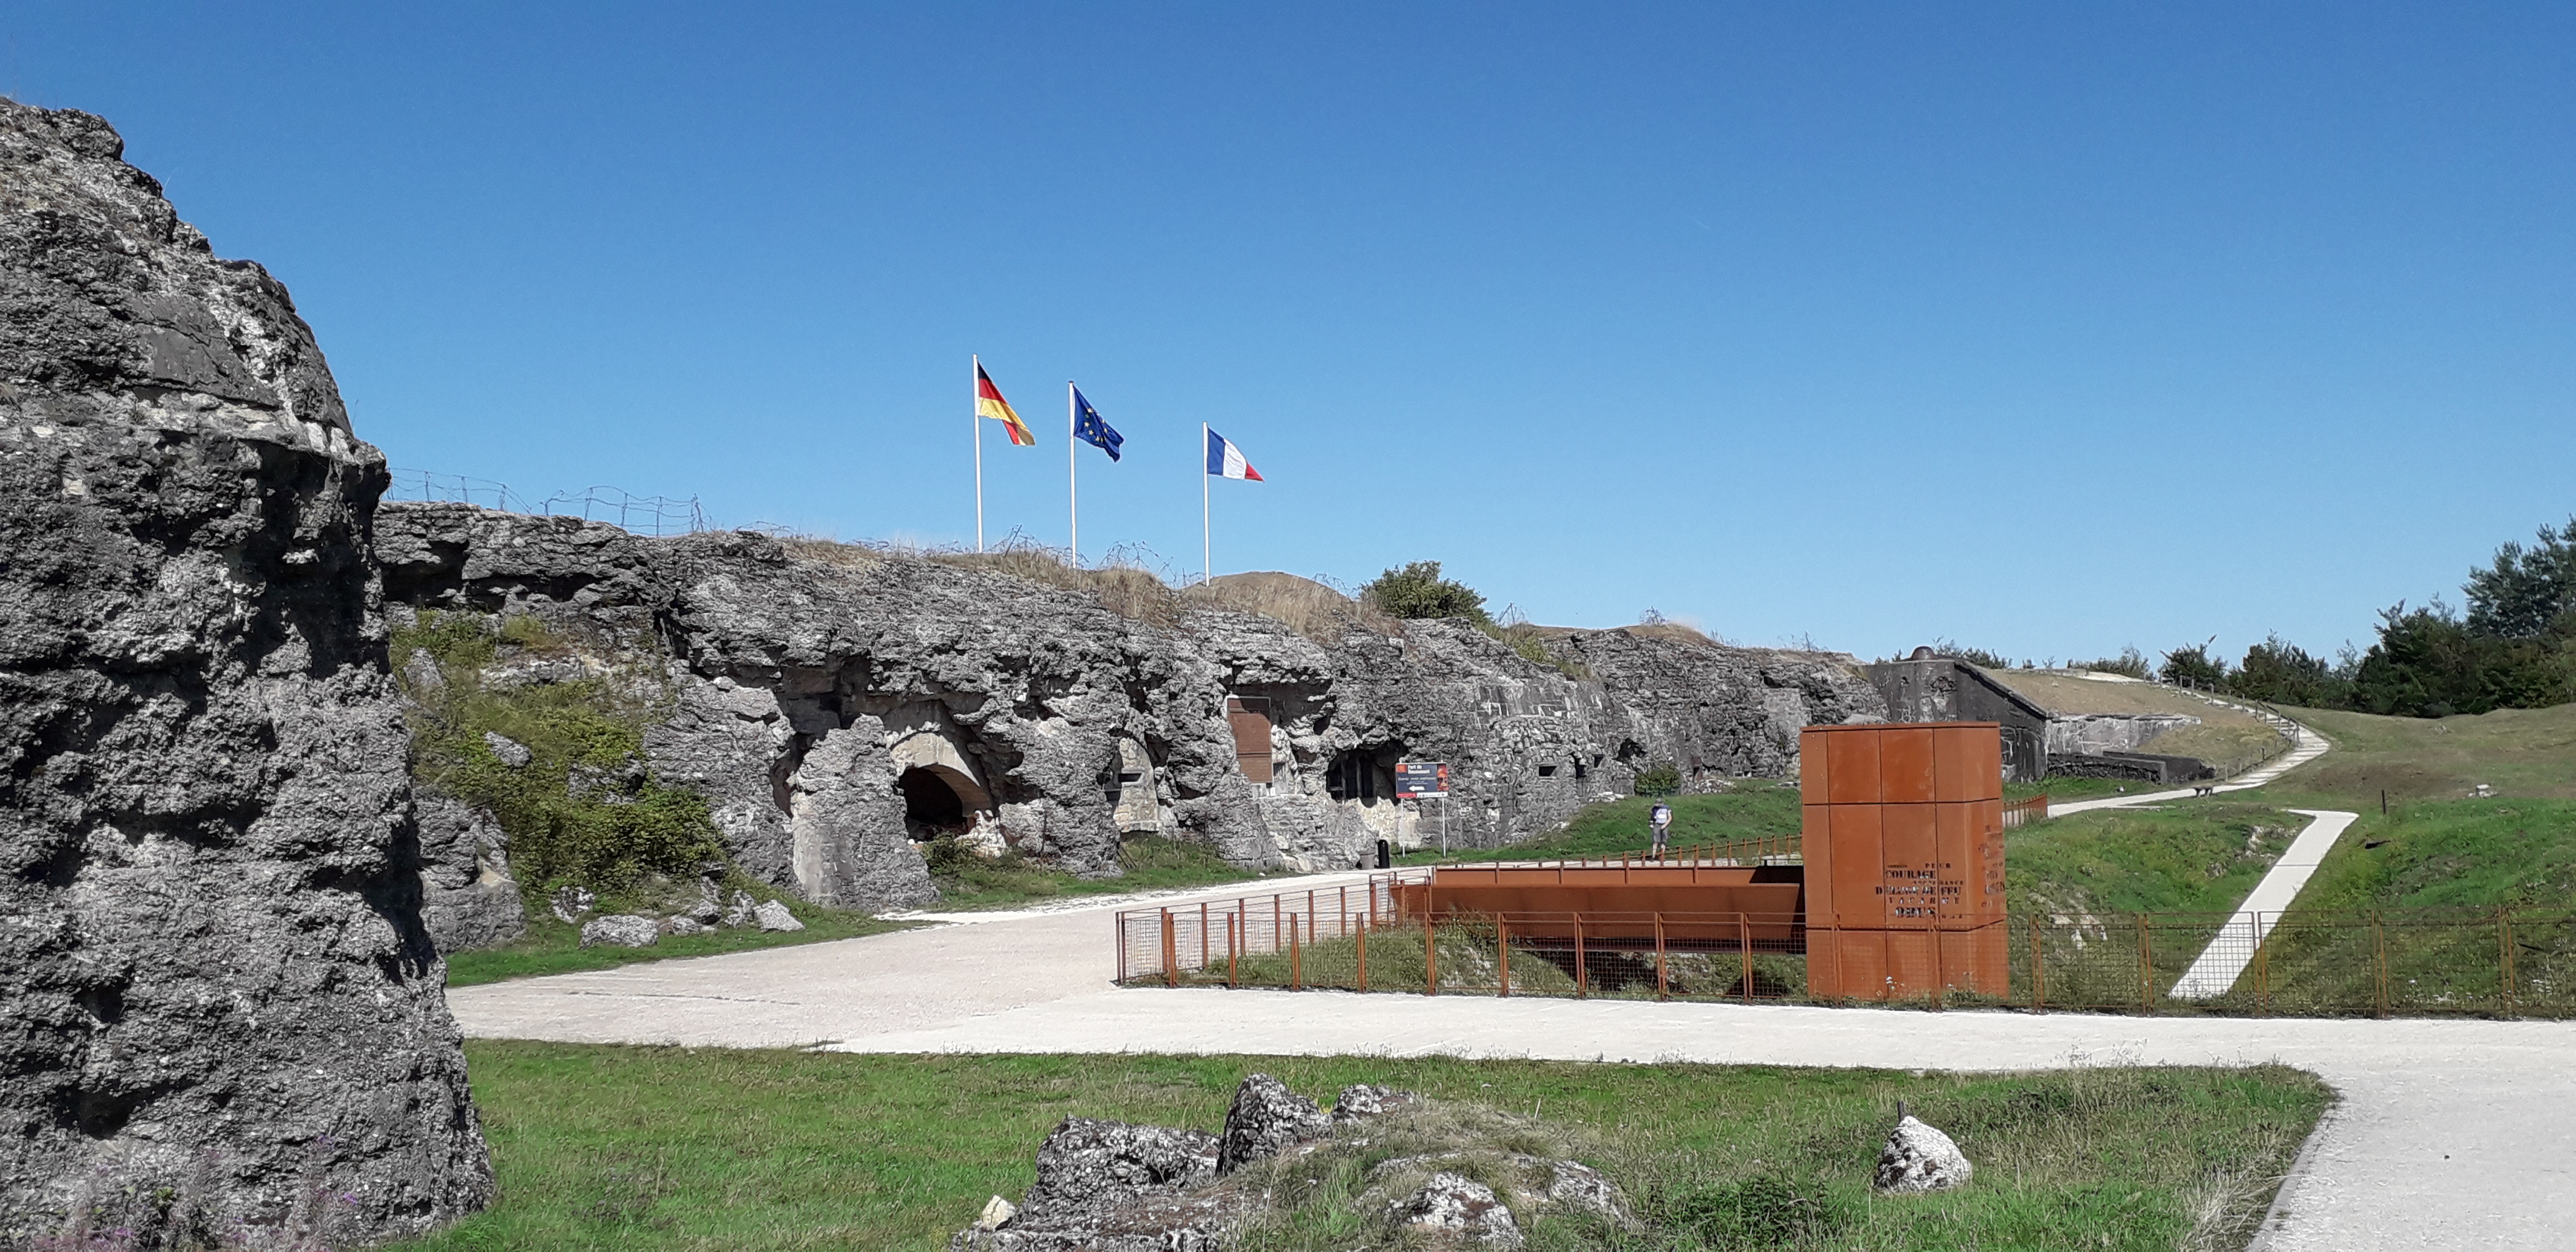 FORT OF DOUAUMONT